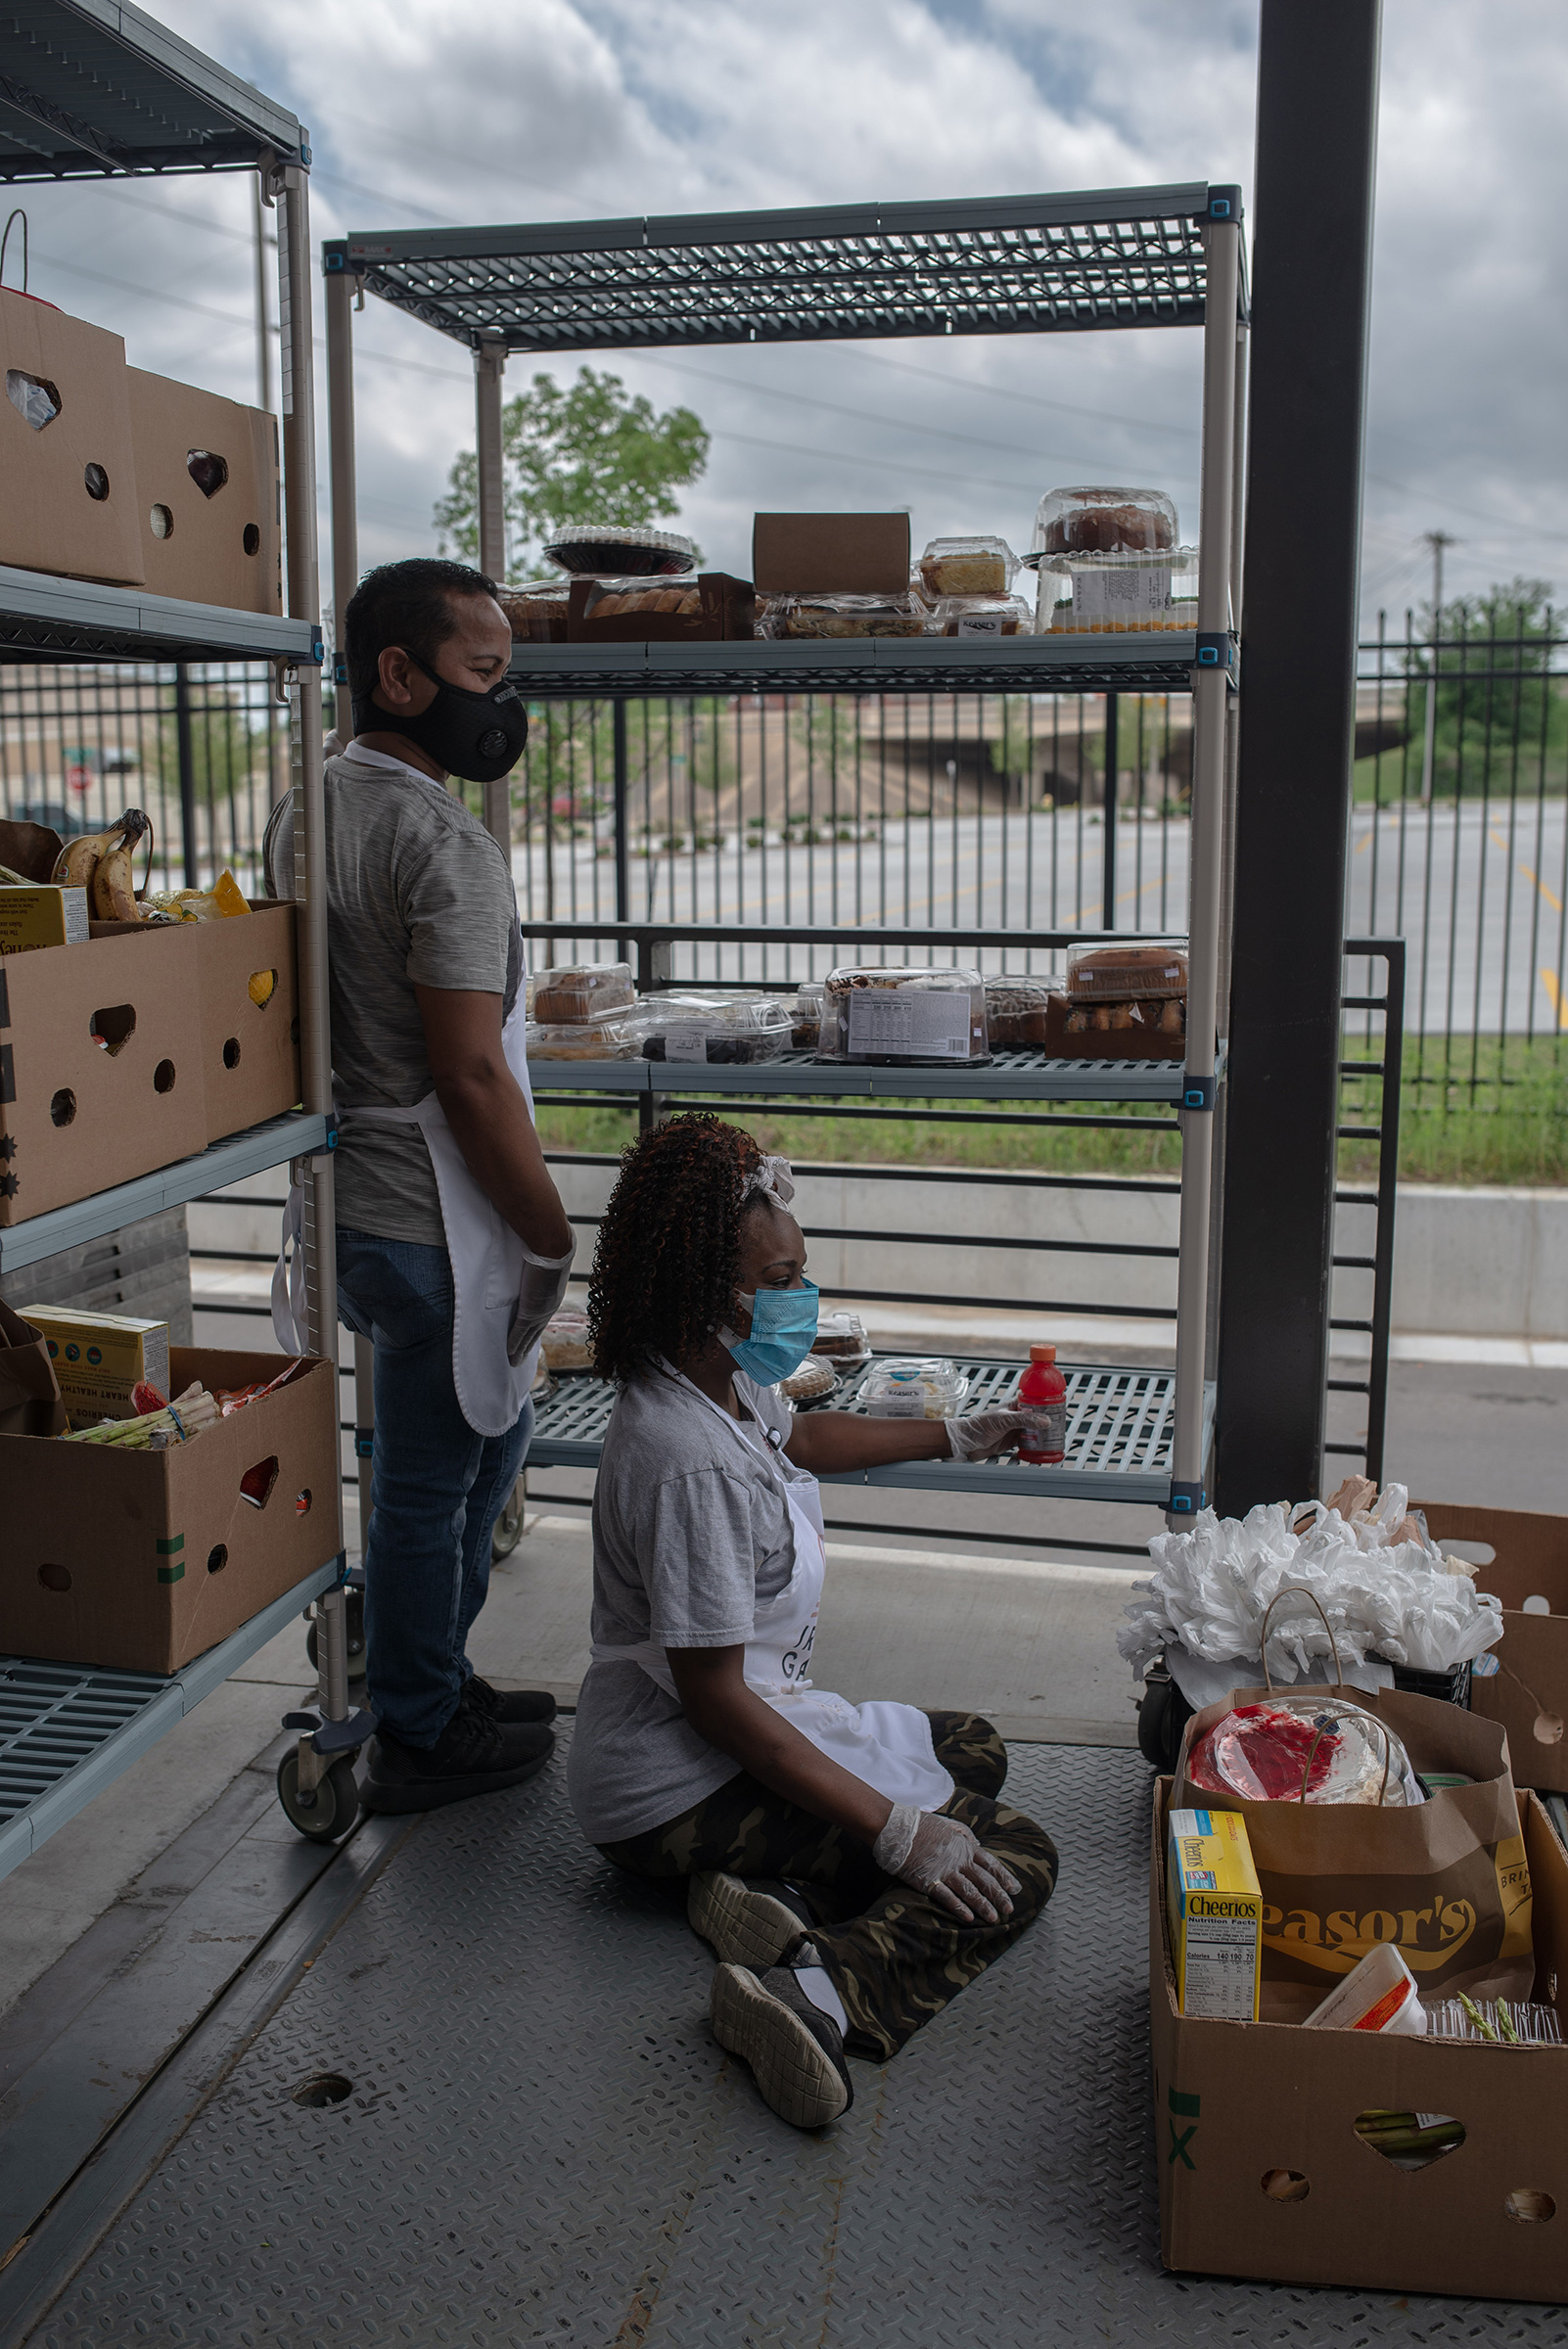 Workers at the Iron Gate drive-through food pantry in Tulsa on April 7.